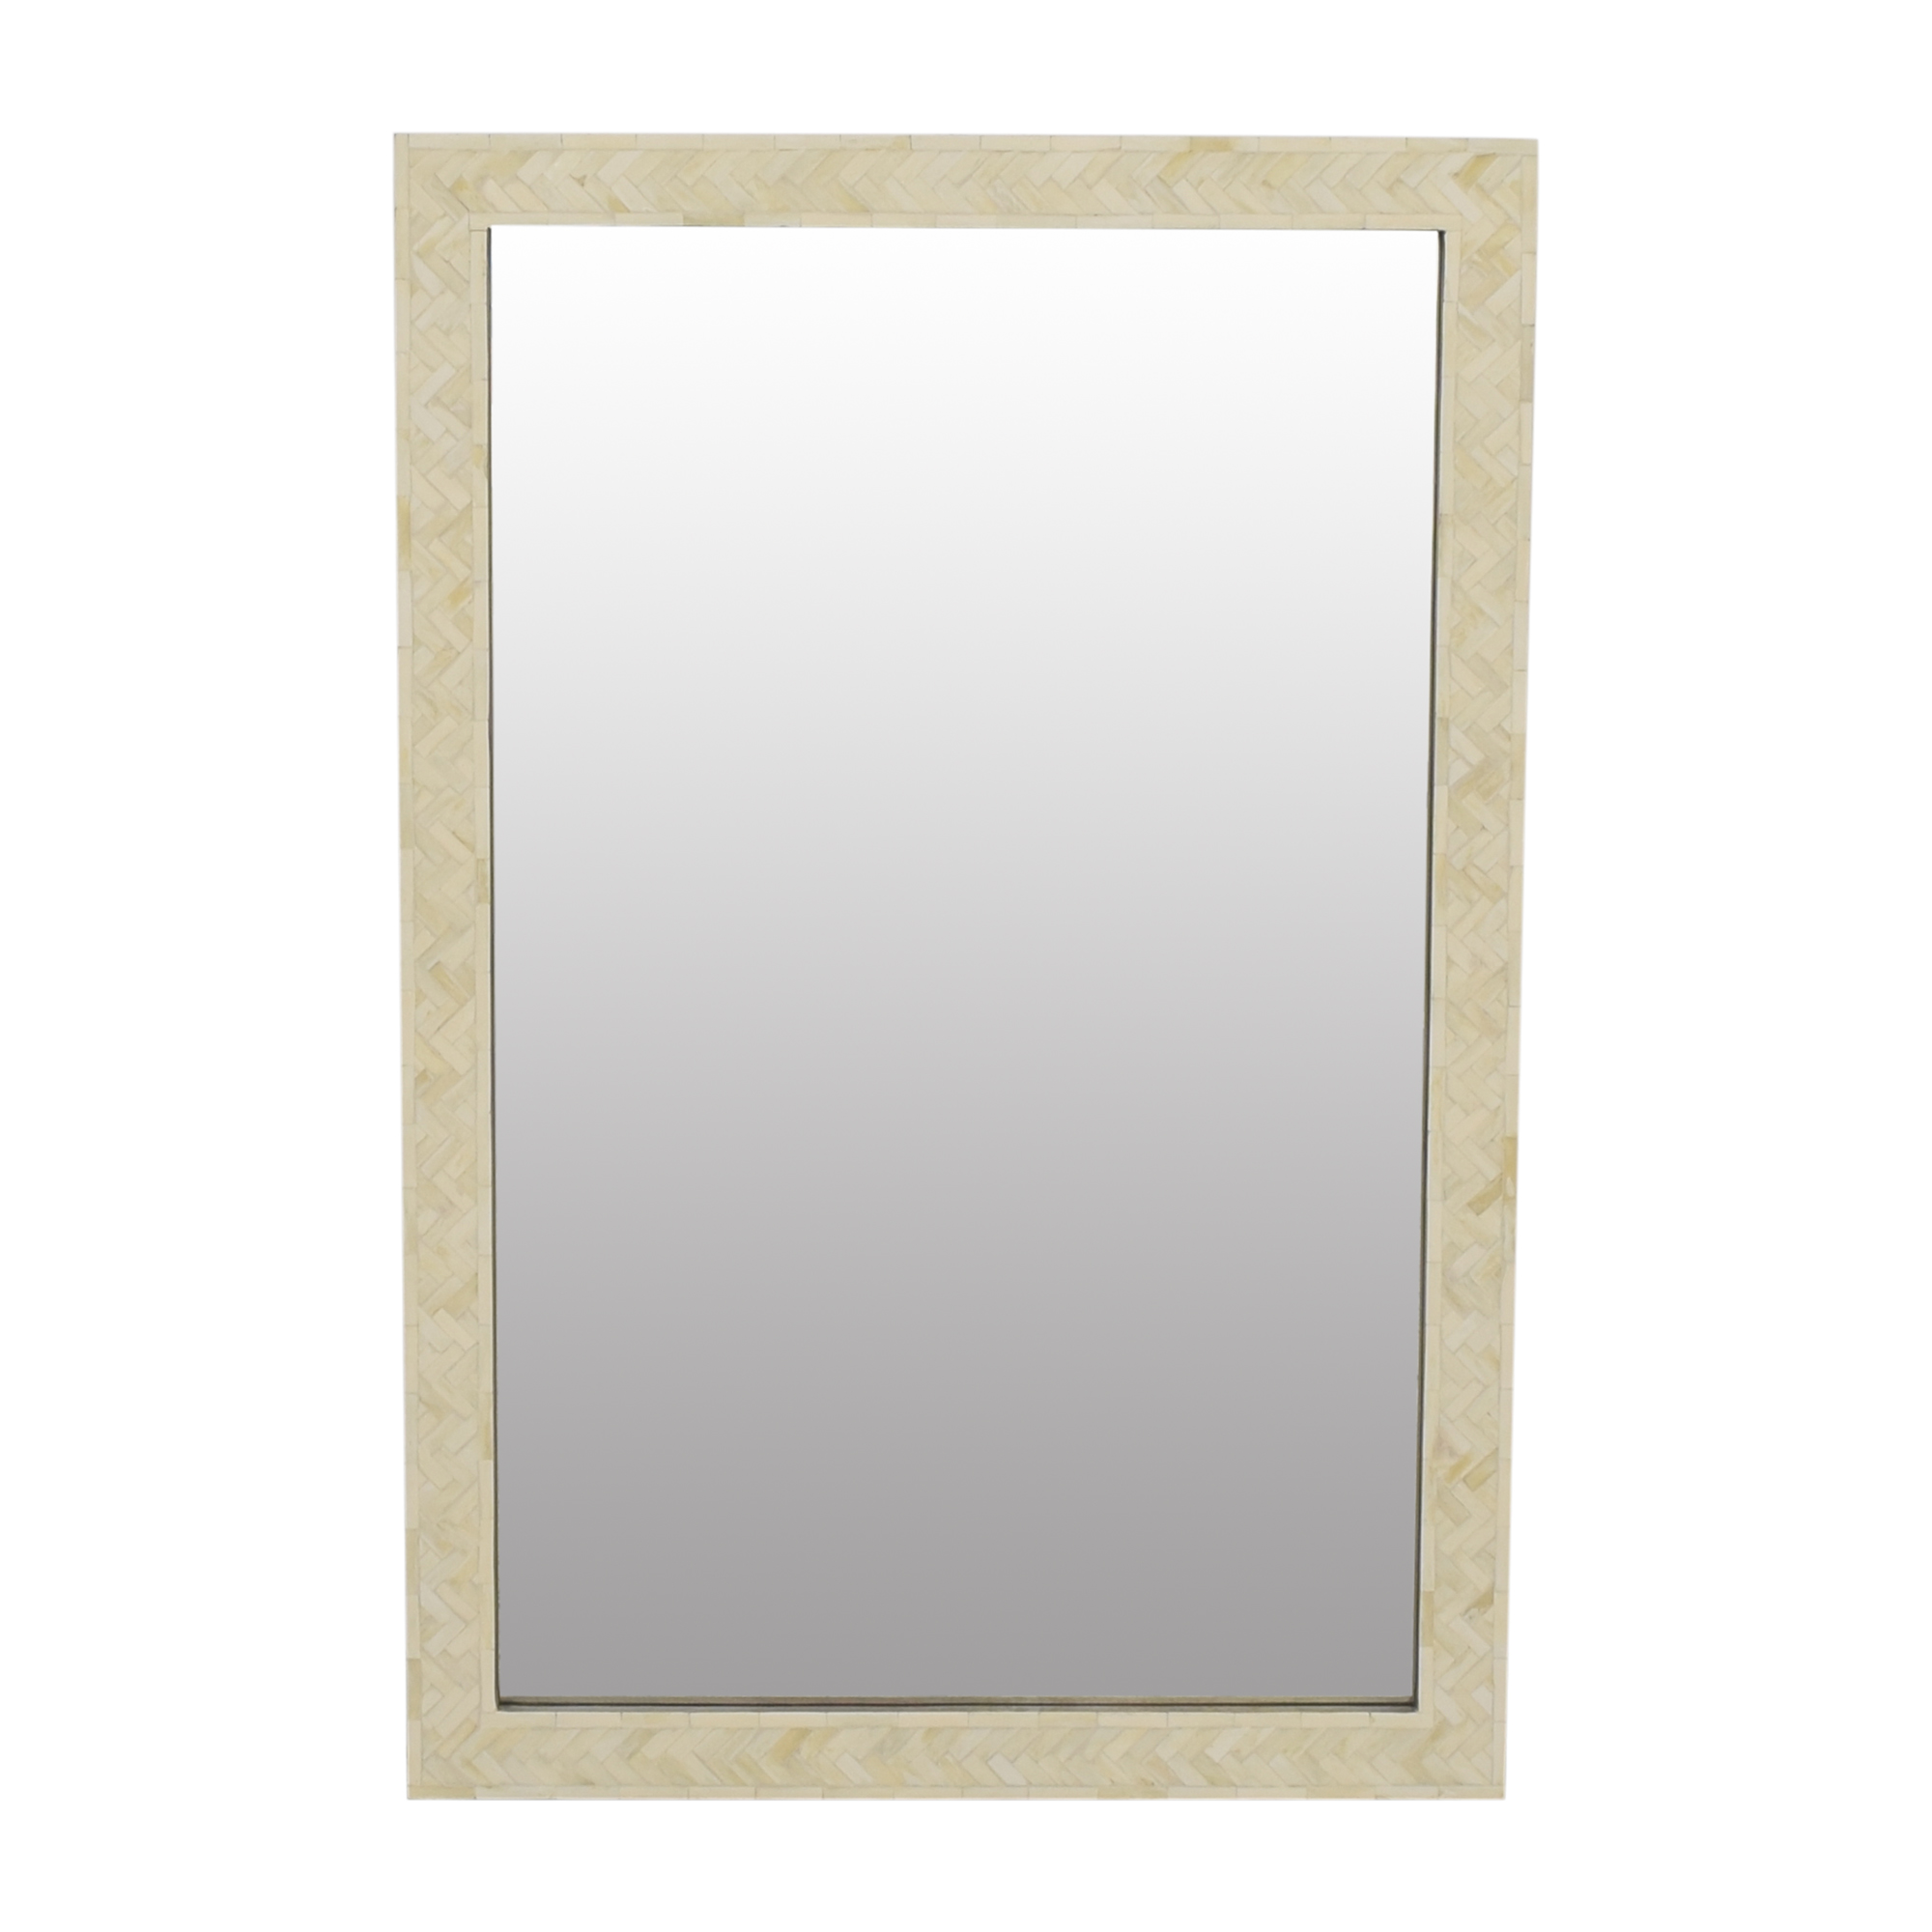 West Elm Parsons Wall Mirror with Inlay / Decor